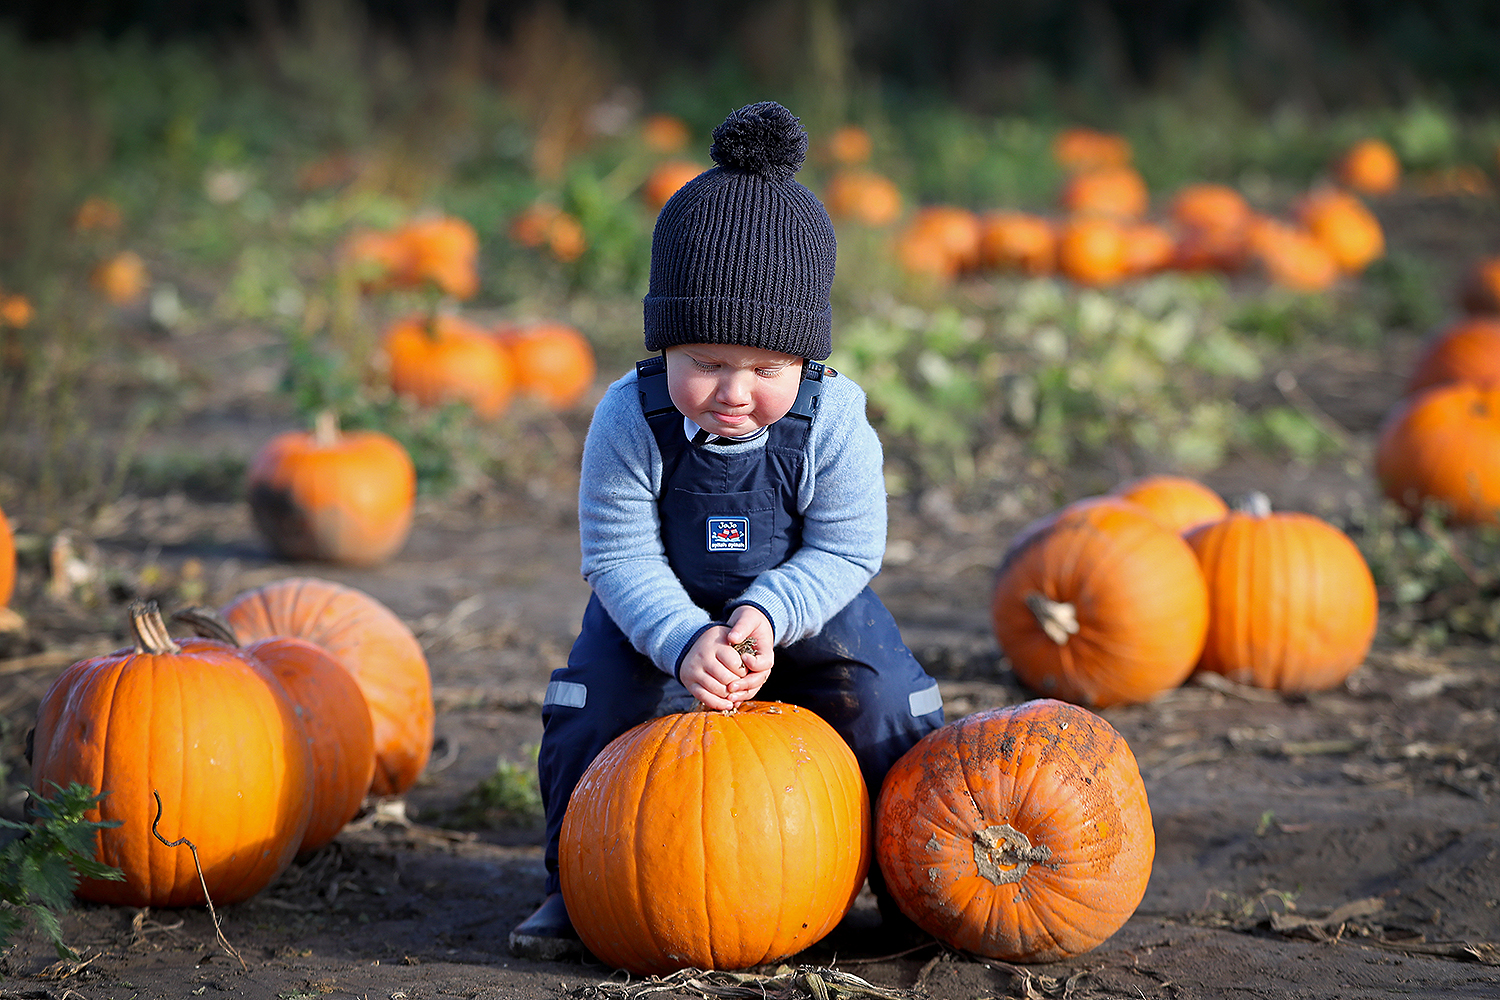 Theo Jackson, the photographer's son, picks pumpkins for Halloween at Garson Farm PYO in London on Oct. 2. Chris Jackson/Getty Images